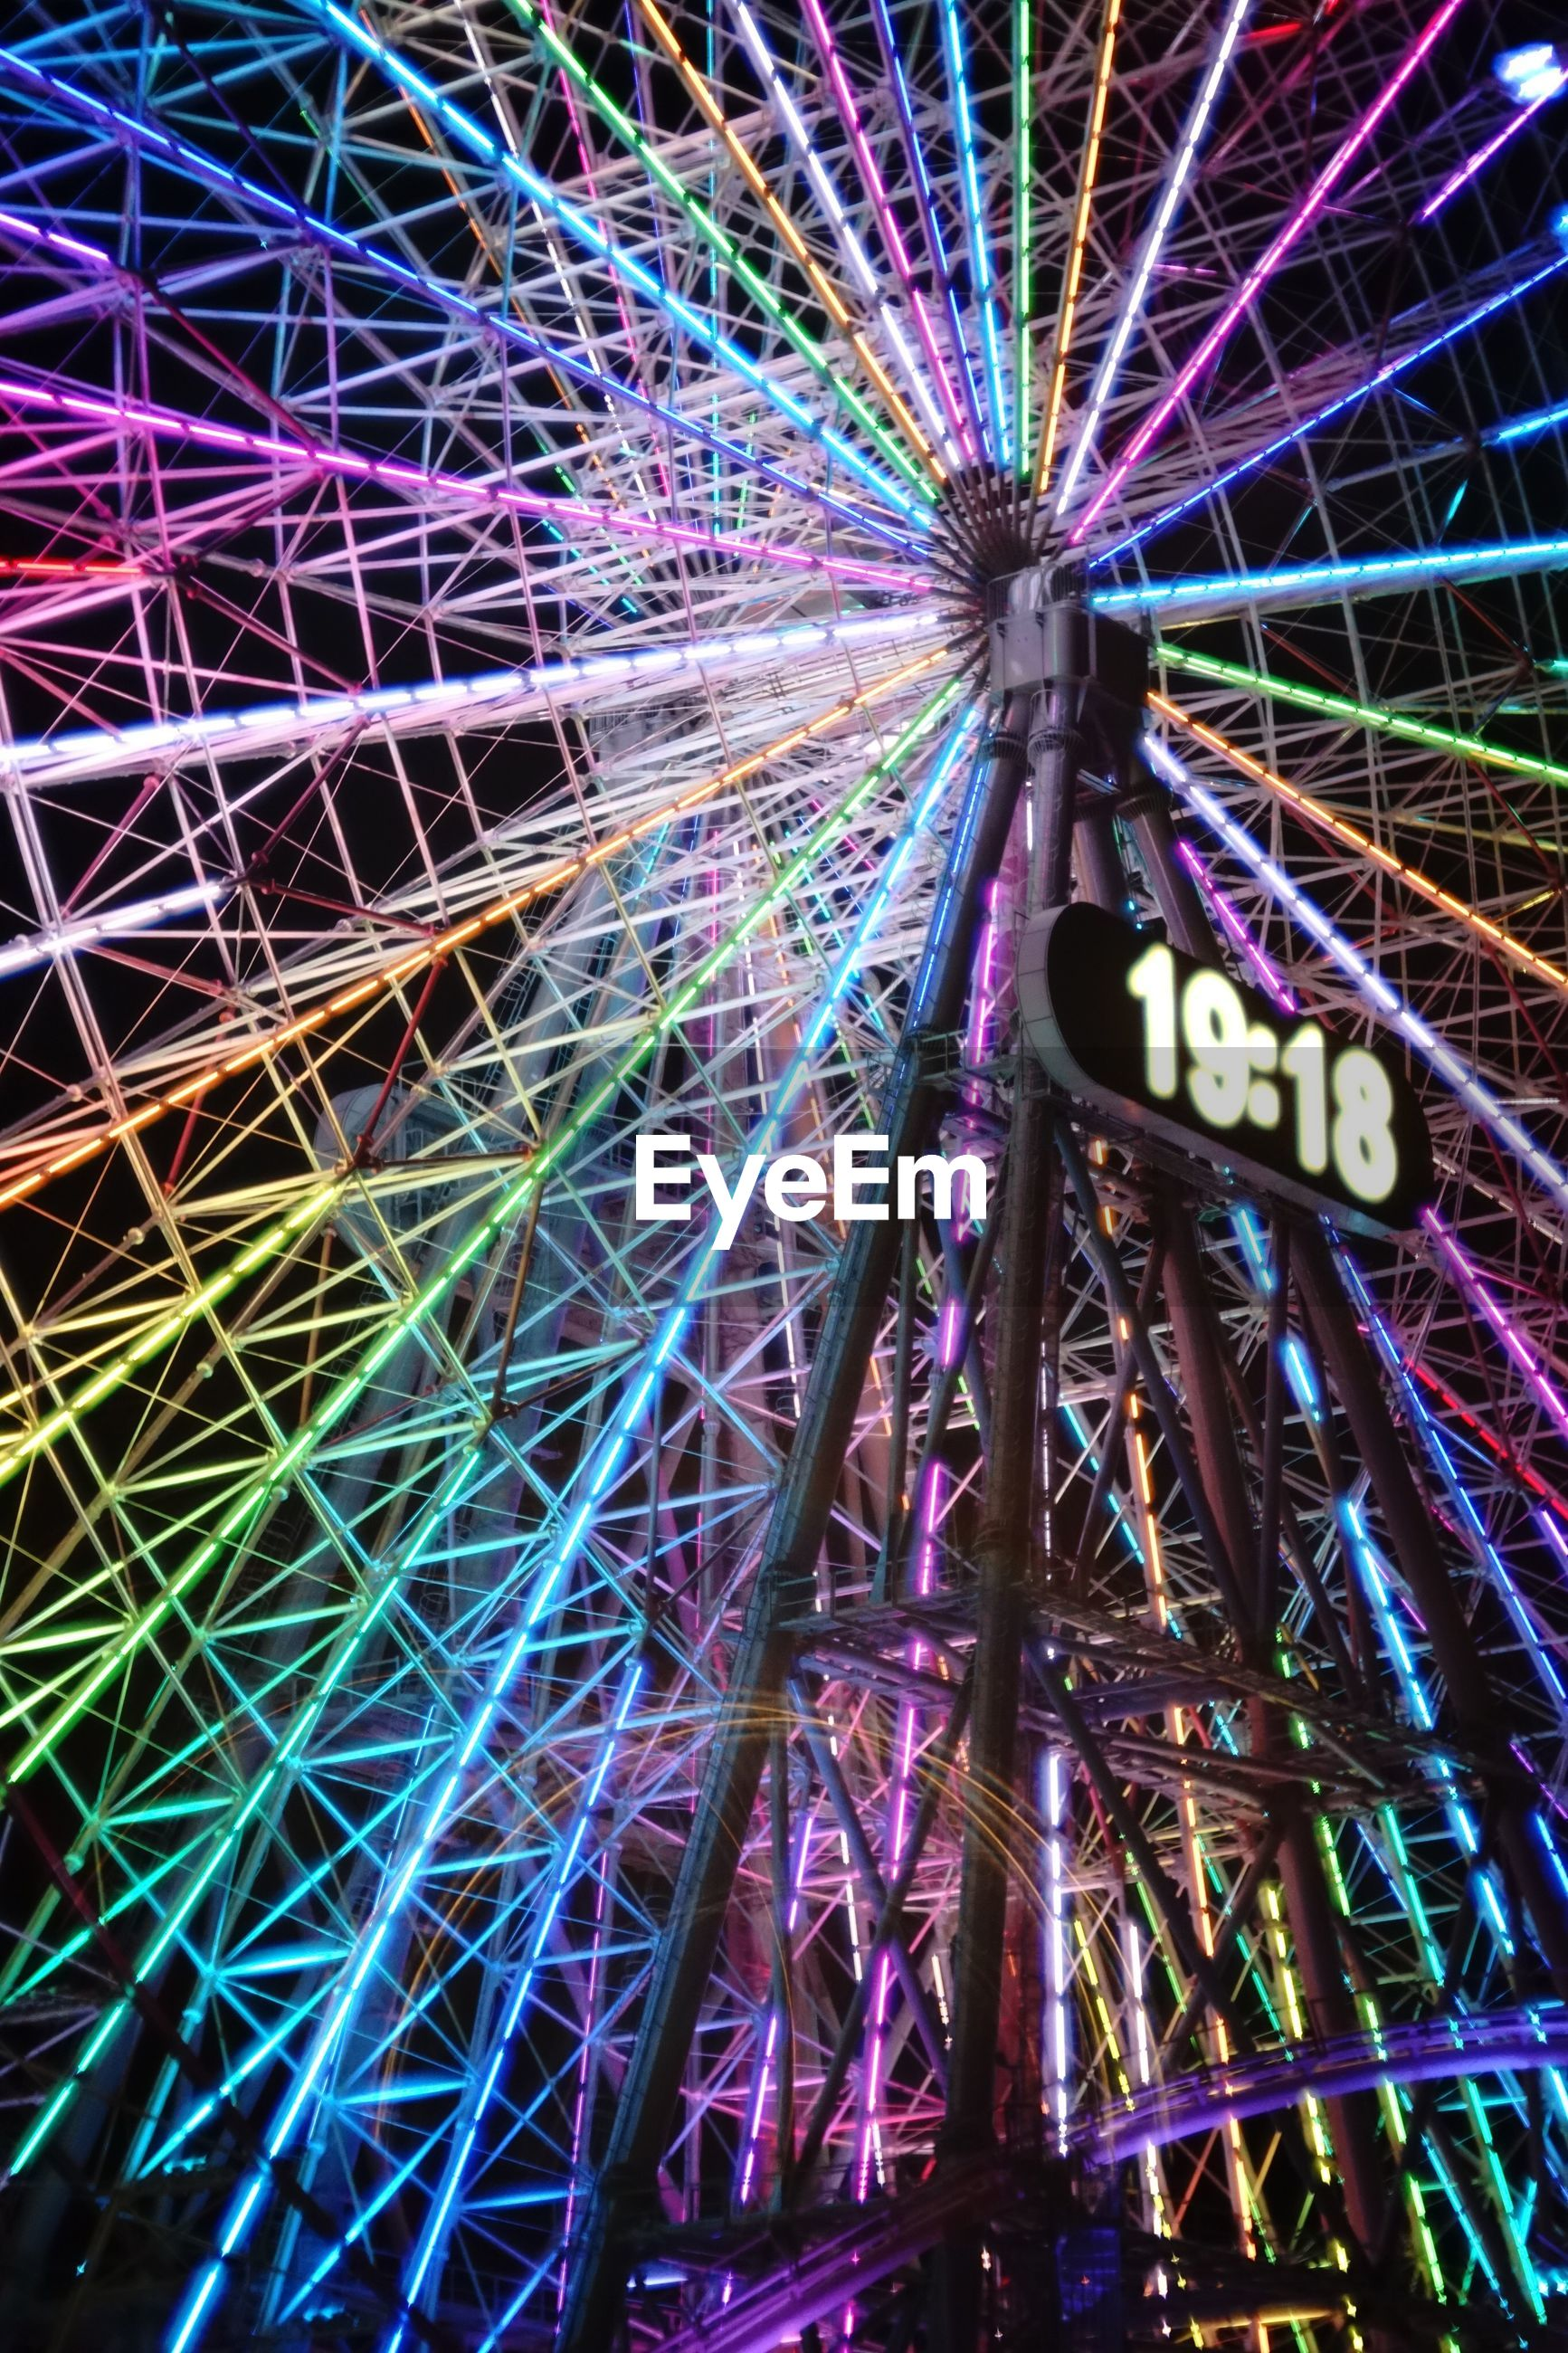 amusement park, low angle view, amusement park ride, arts culture and entertainment, ferris wheel, built structure, architecture, illuminated, metal, multi colored, night, outdoors, no people, sky, pattern, travel destinations, city, traveling carnival, metallic, motion